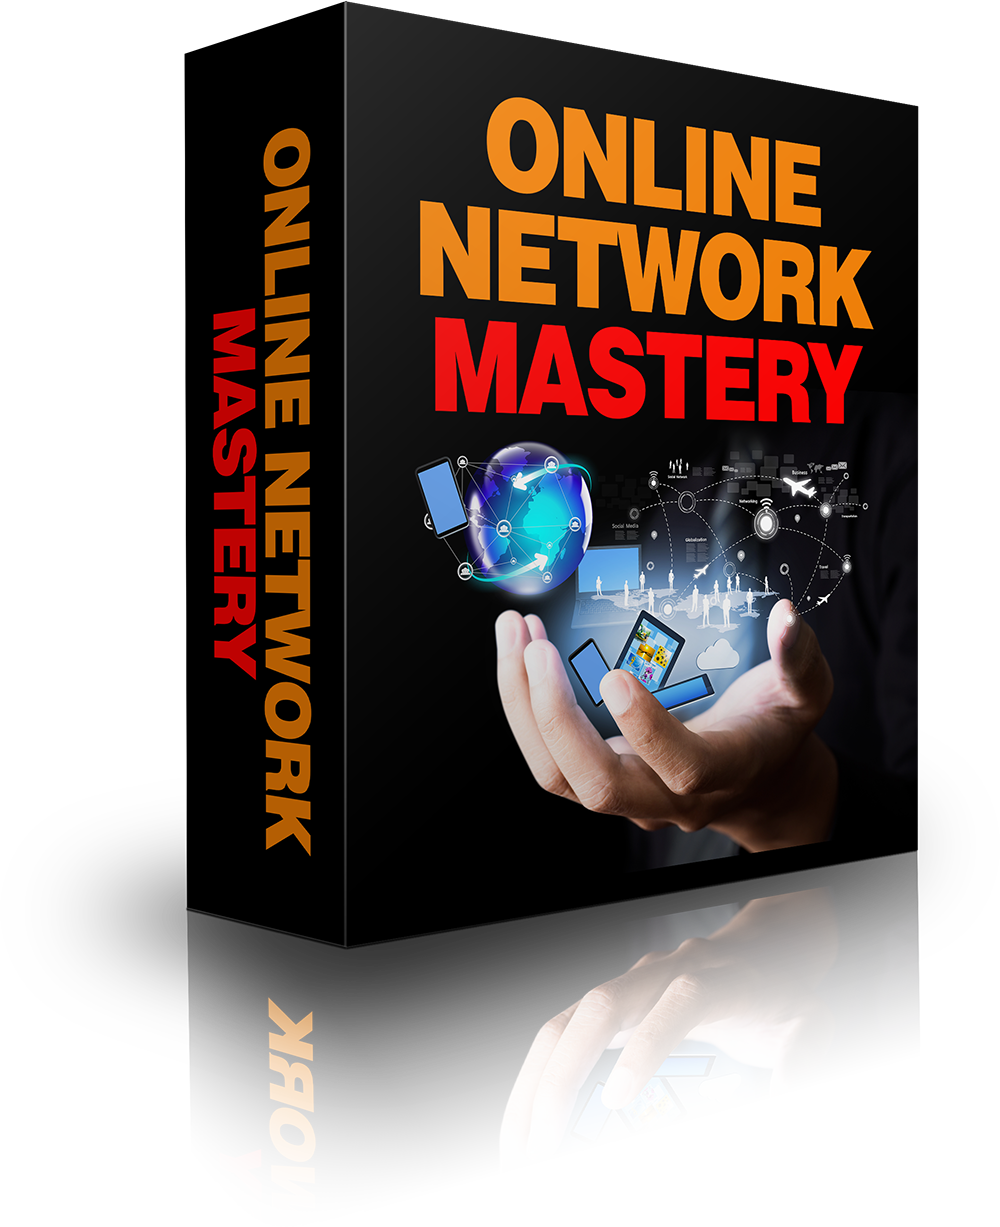 Online Network Mastery